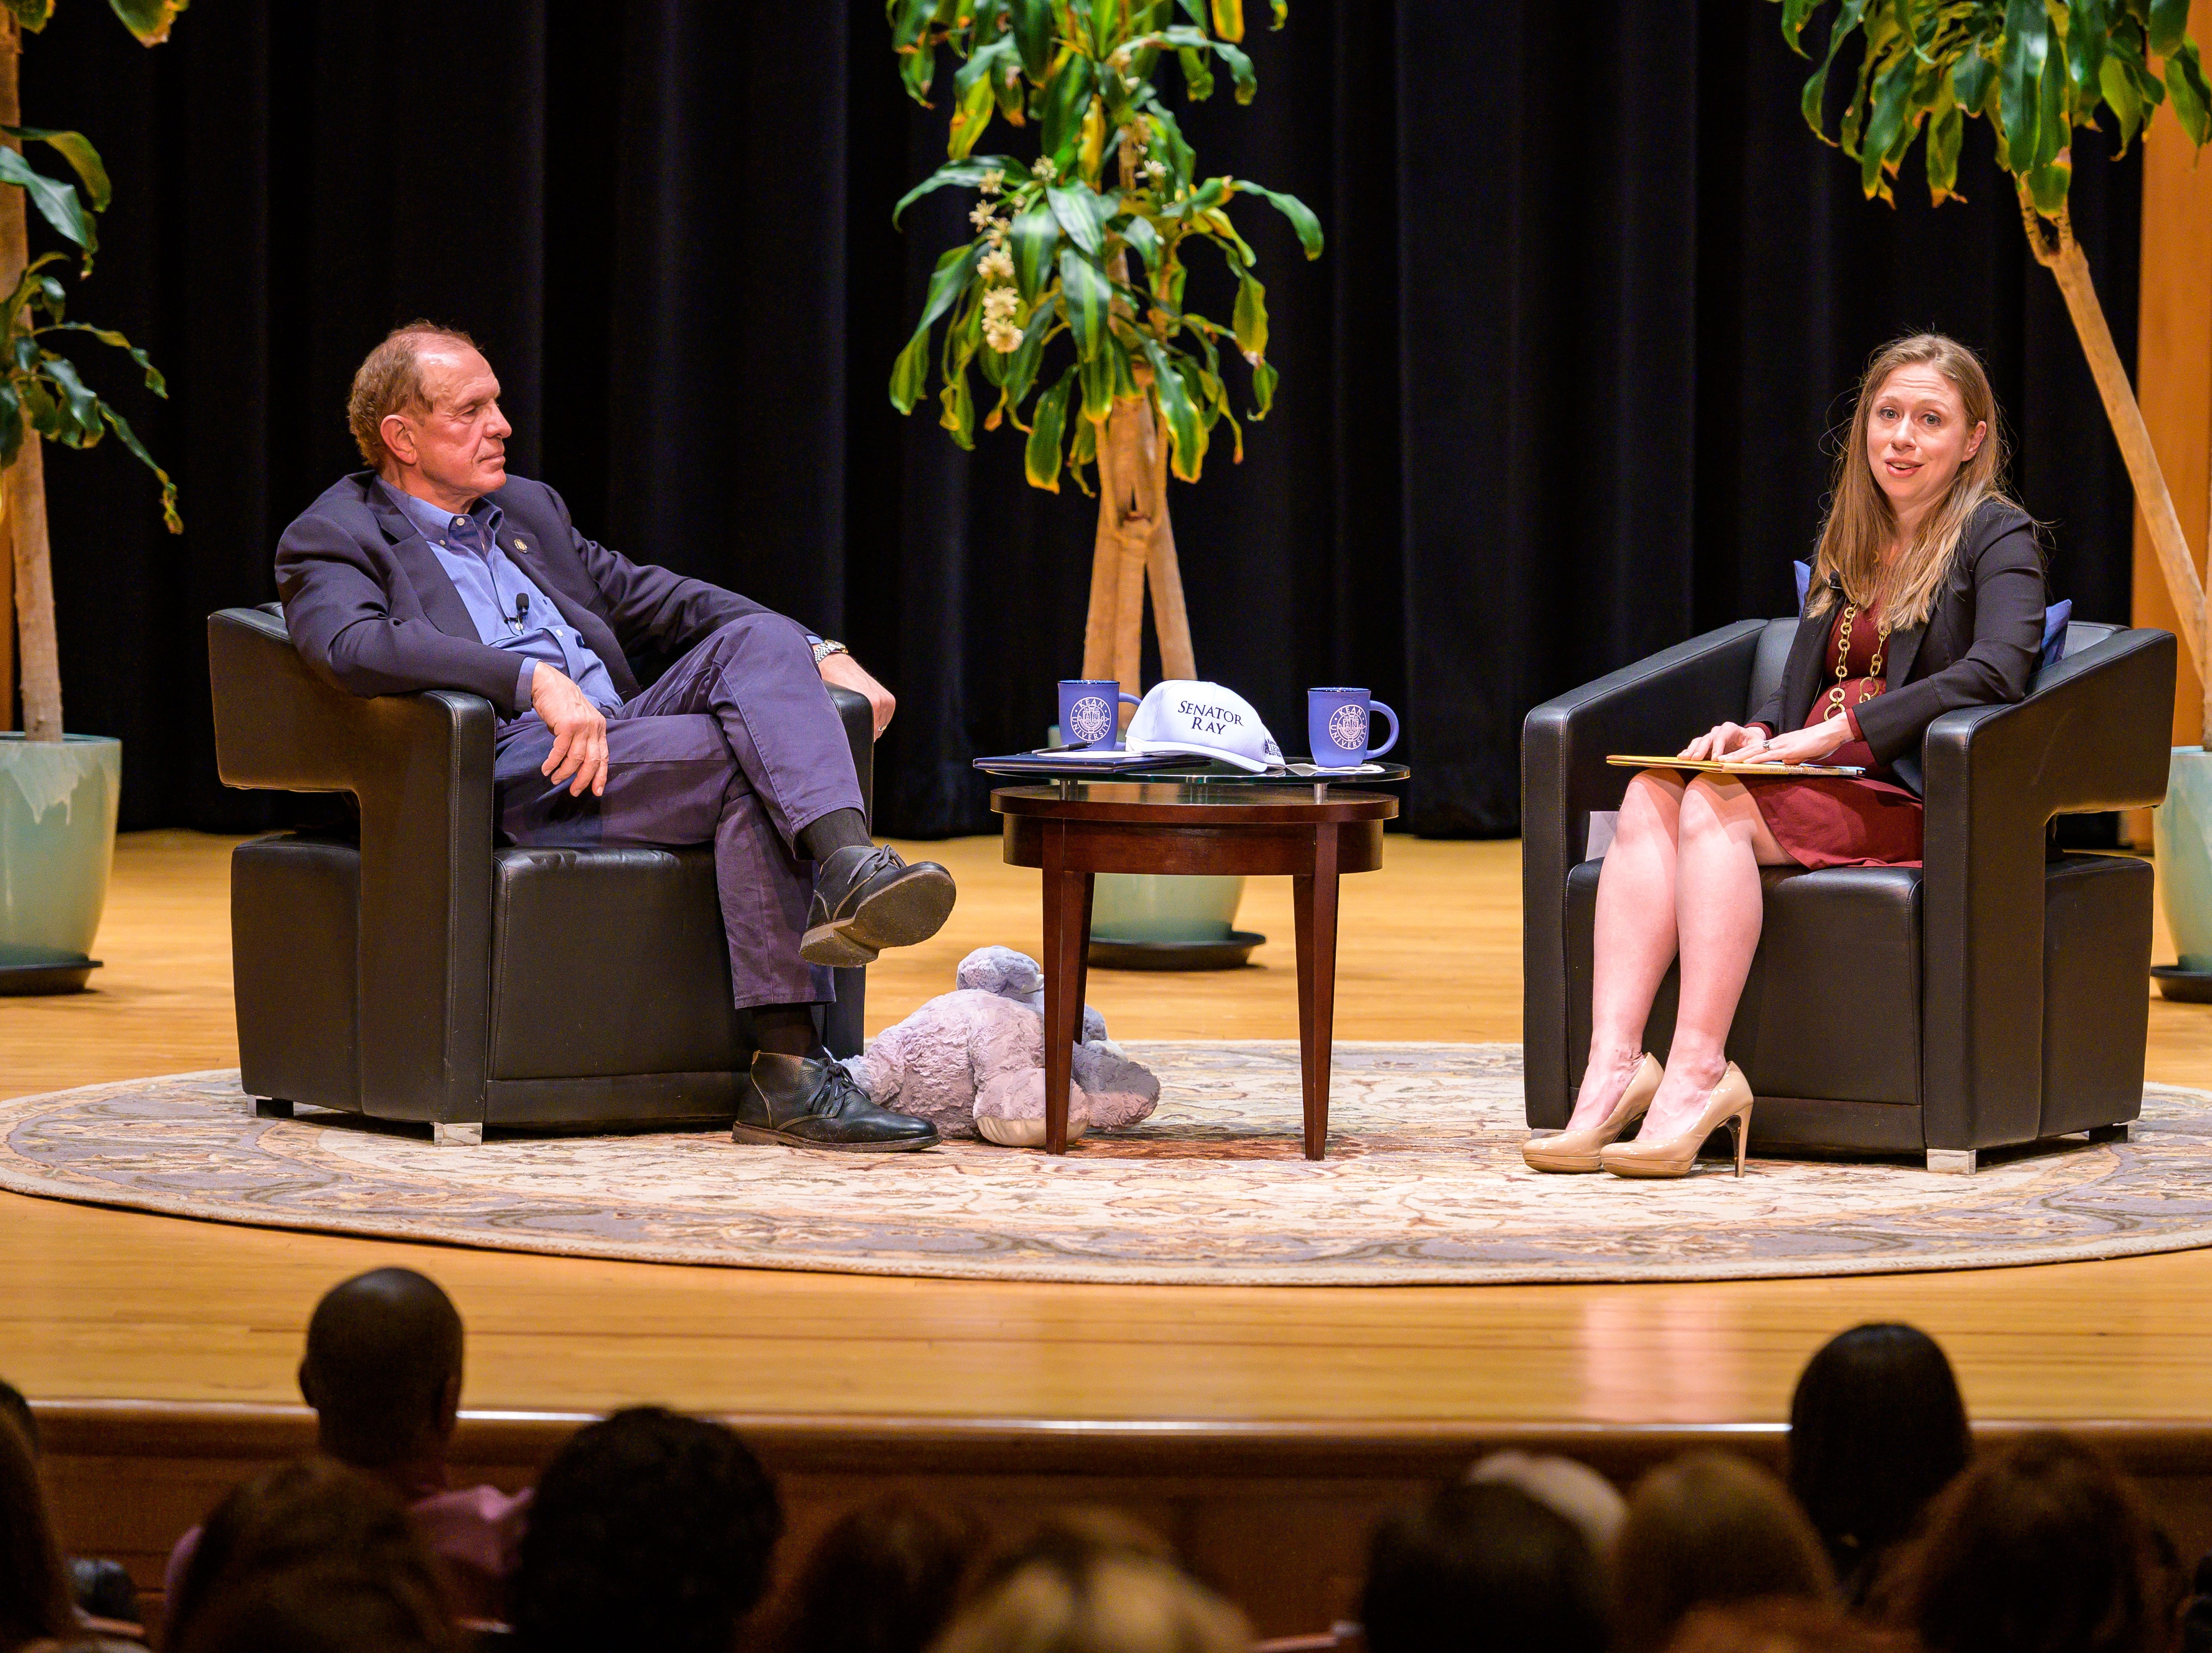 """Chelsea Clinton presented a sold-out discussion, book signing and audience Q&A at Kean University's Enlow Recital Hall Thursday night, which centered on her fifth children's book """"Don't Let Them Disappear."""""""